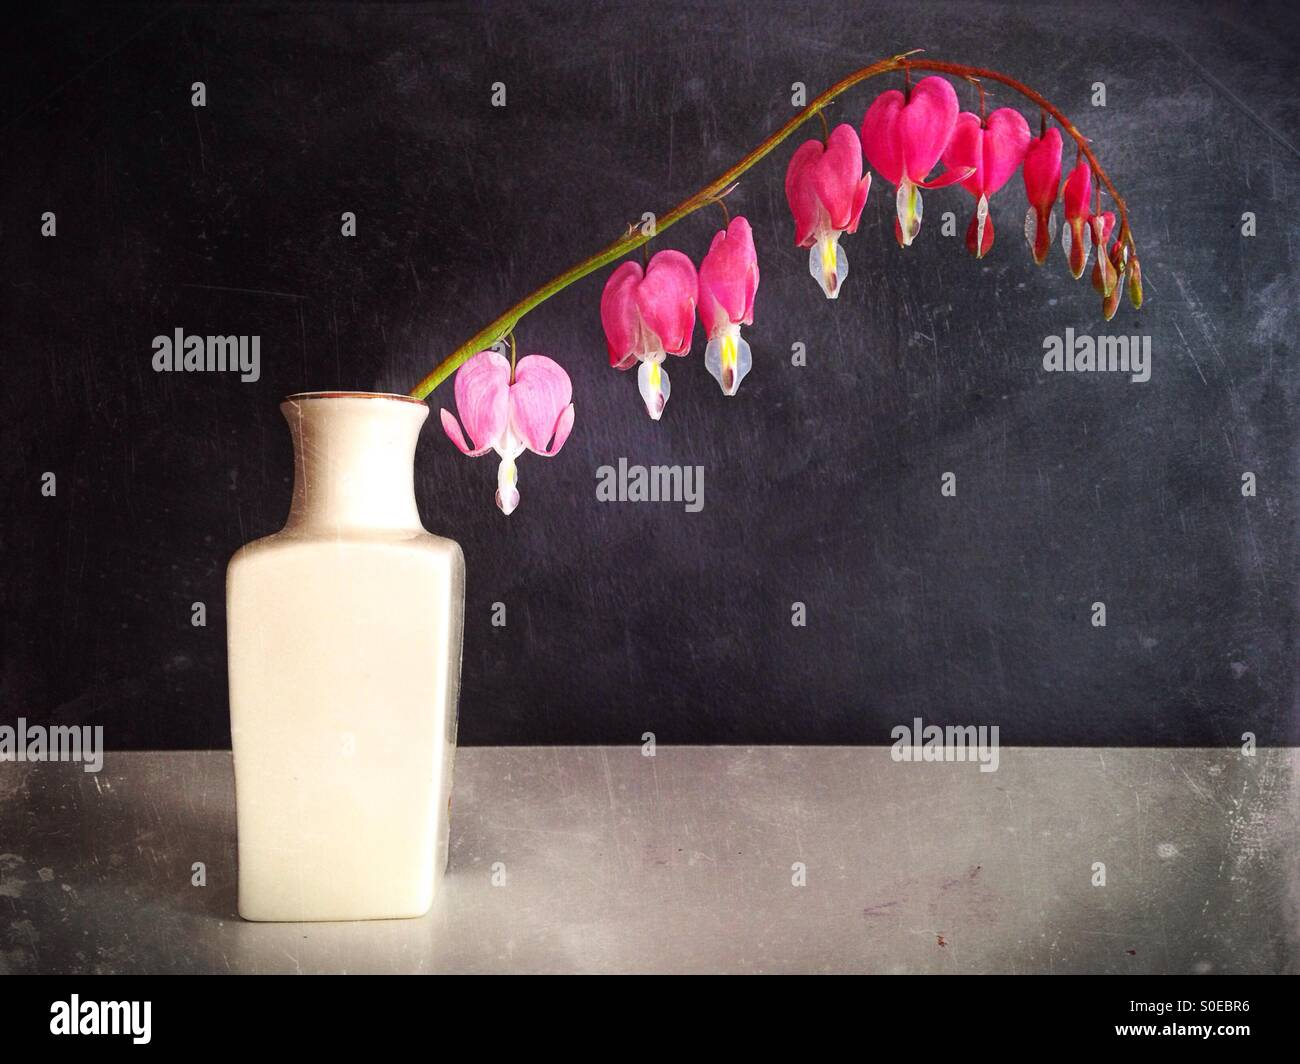 A vase with a sprig of bleeding hearts flowers. - Stock Image